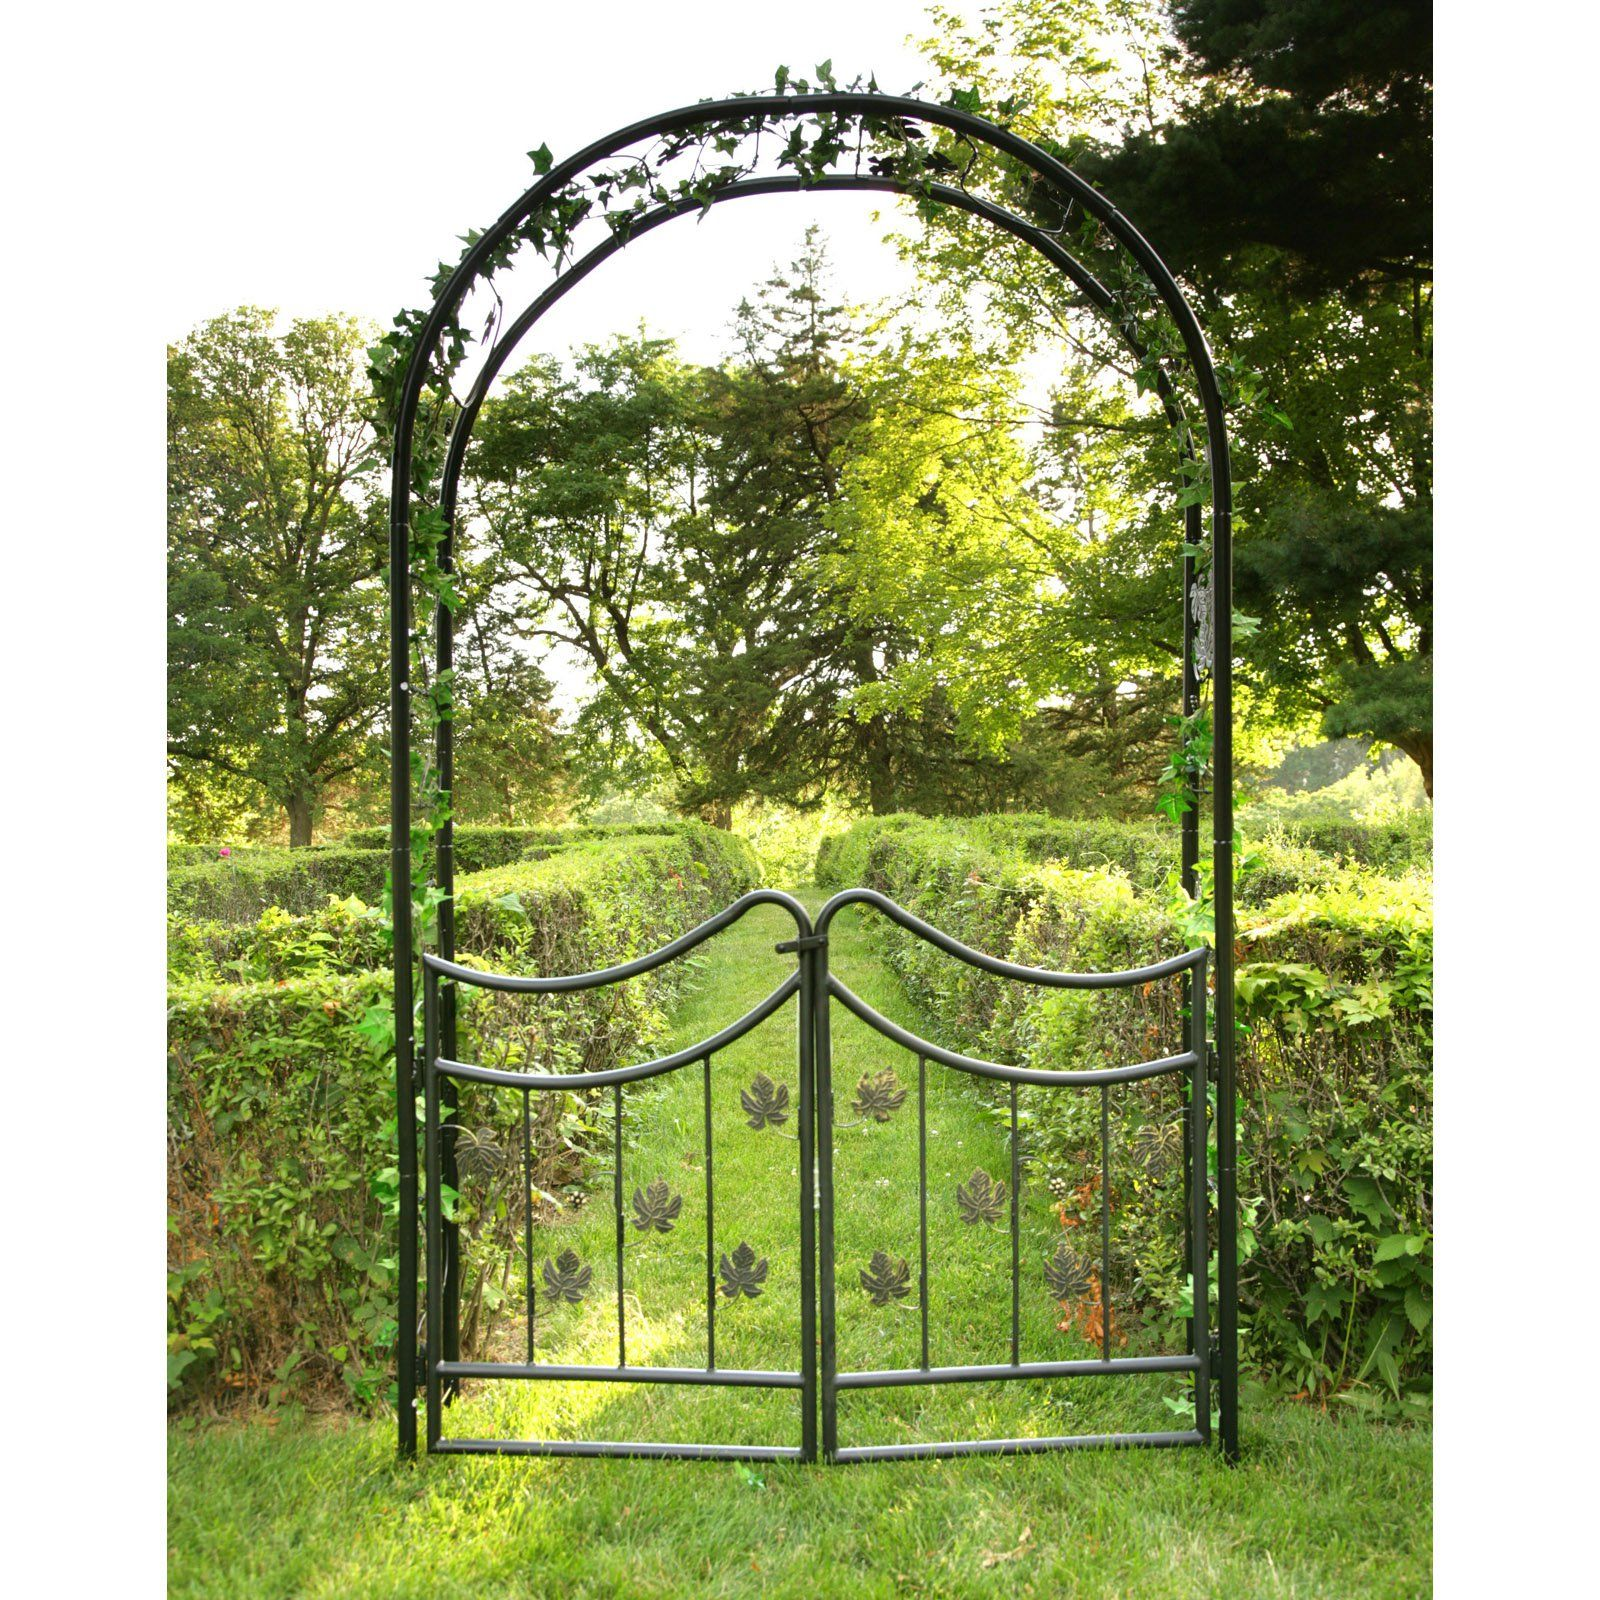 Superior Tierra Derco Bacchus Iron Arch Arbor With Gate   The Tierra Derco Bacchus  Iron Arch Arbor With Gate Features A Black Polyester Powder Coating For A  Lasting ...